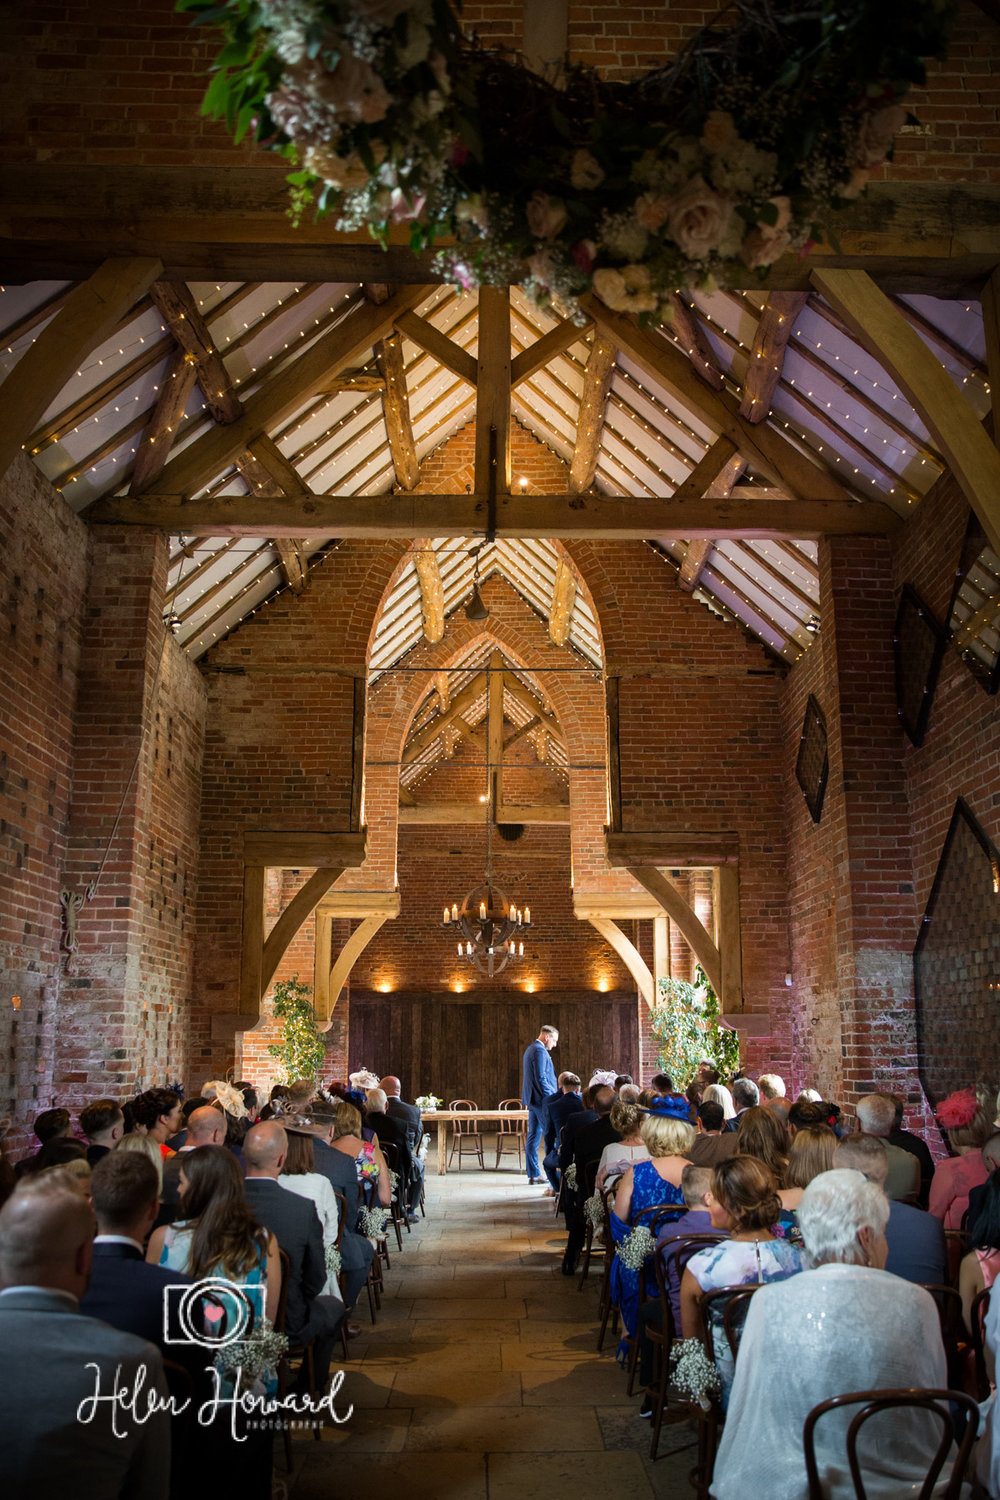 Shustoke Farm Barns Wedding Photography by Helen Howard-13.jpg